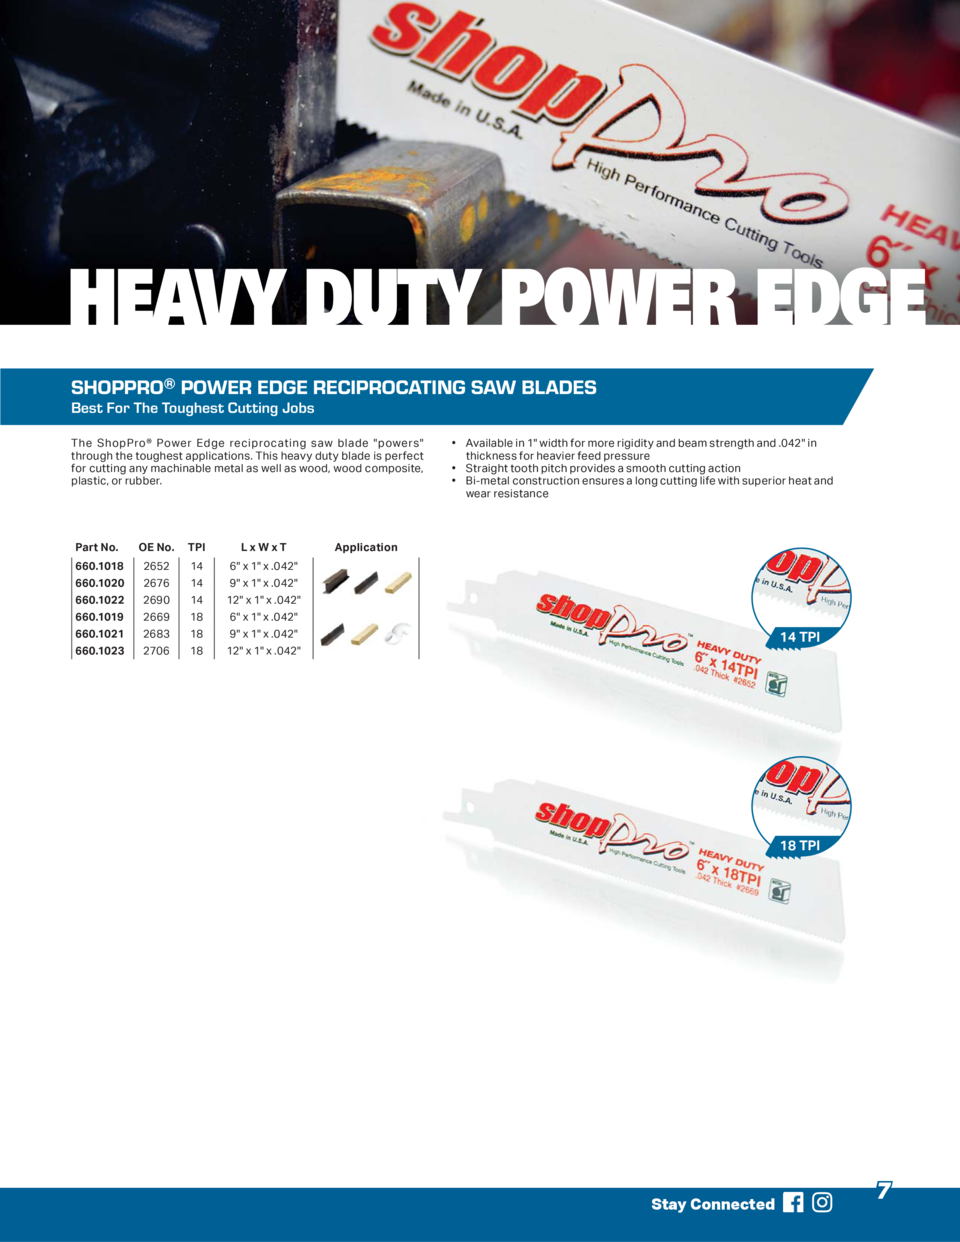 HEAVY DUTY POWER EDGE SHOPPRO   POWER EDGE RECIPROCATING SAW BLADES Best For The Toughest Cutting Jobs The ShopPro   Power...